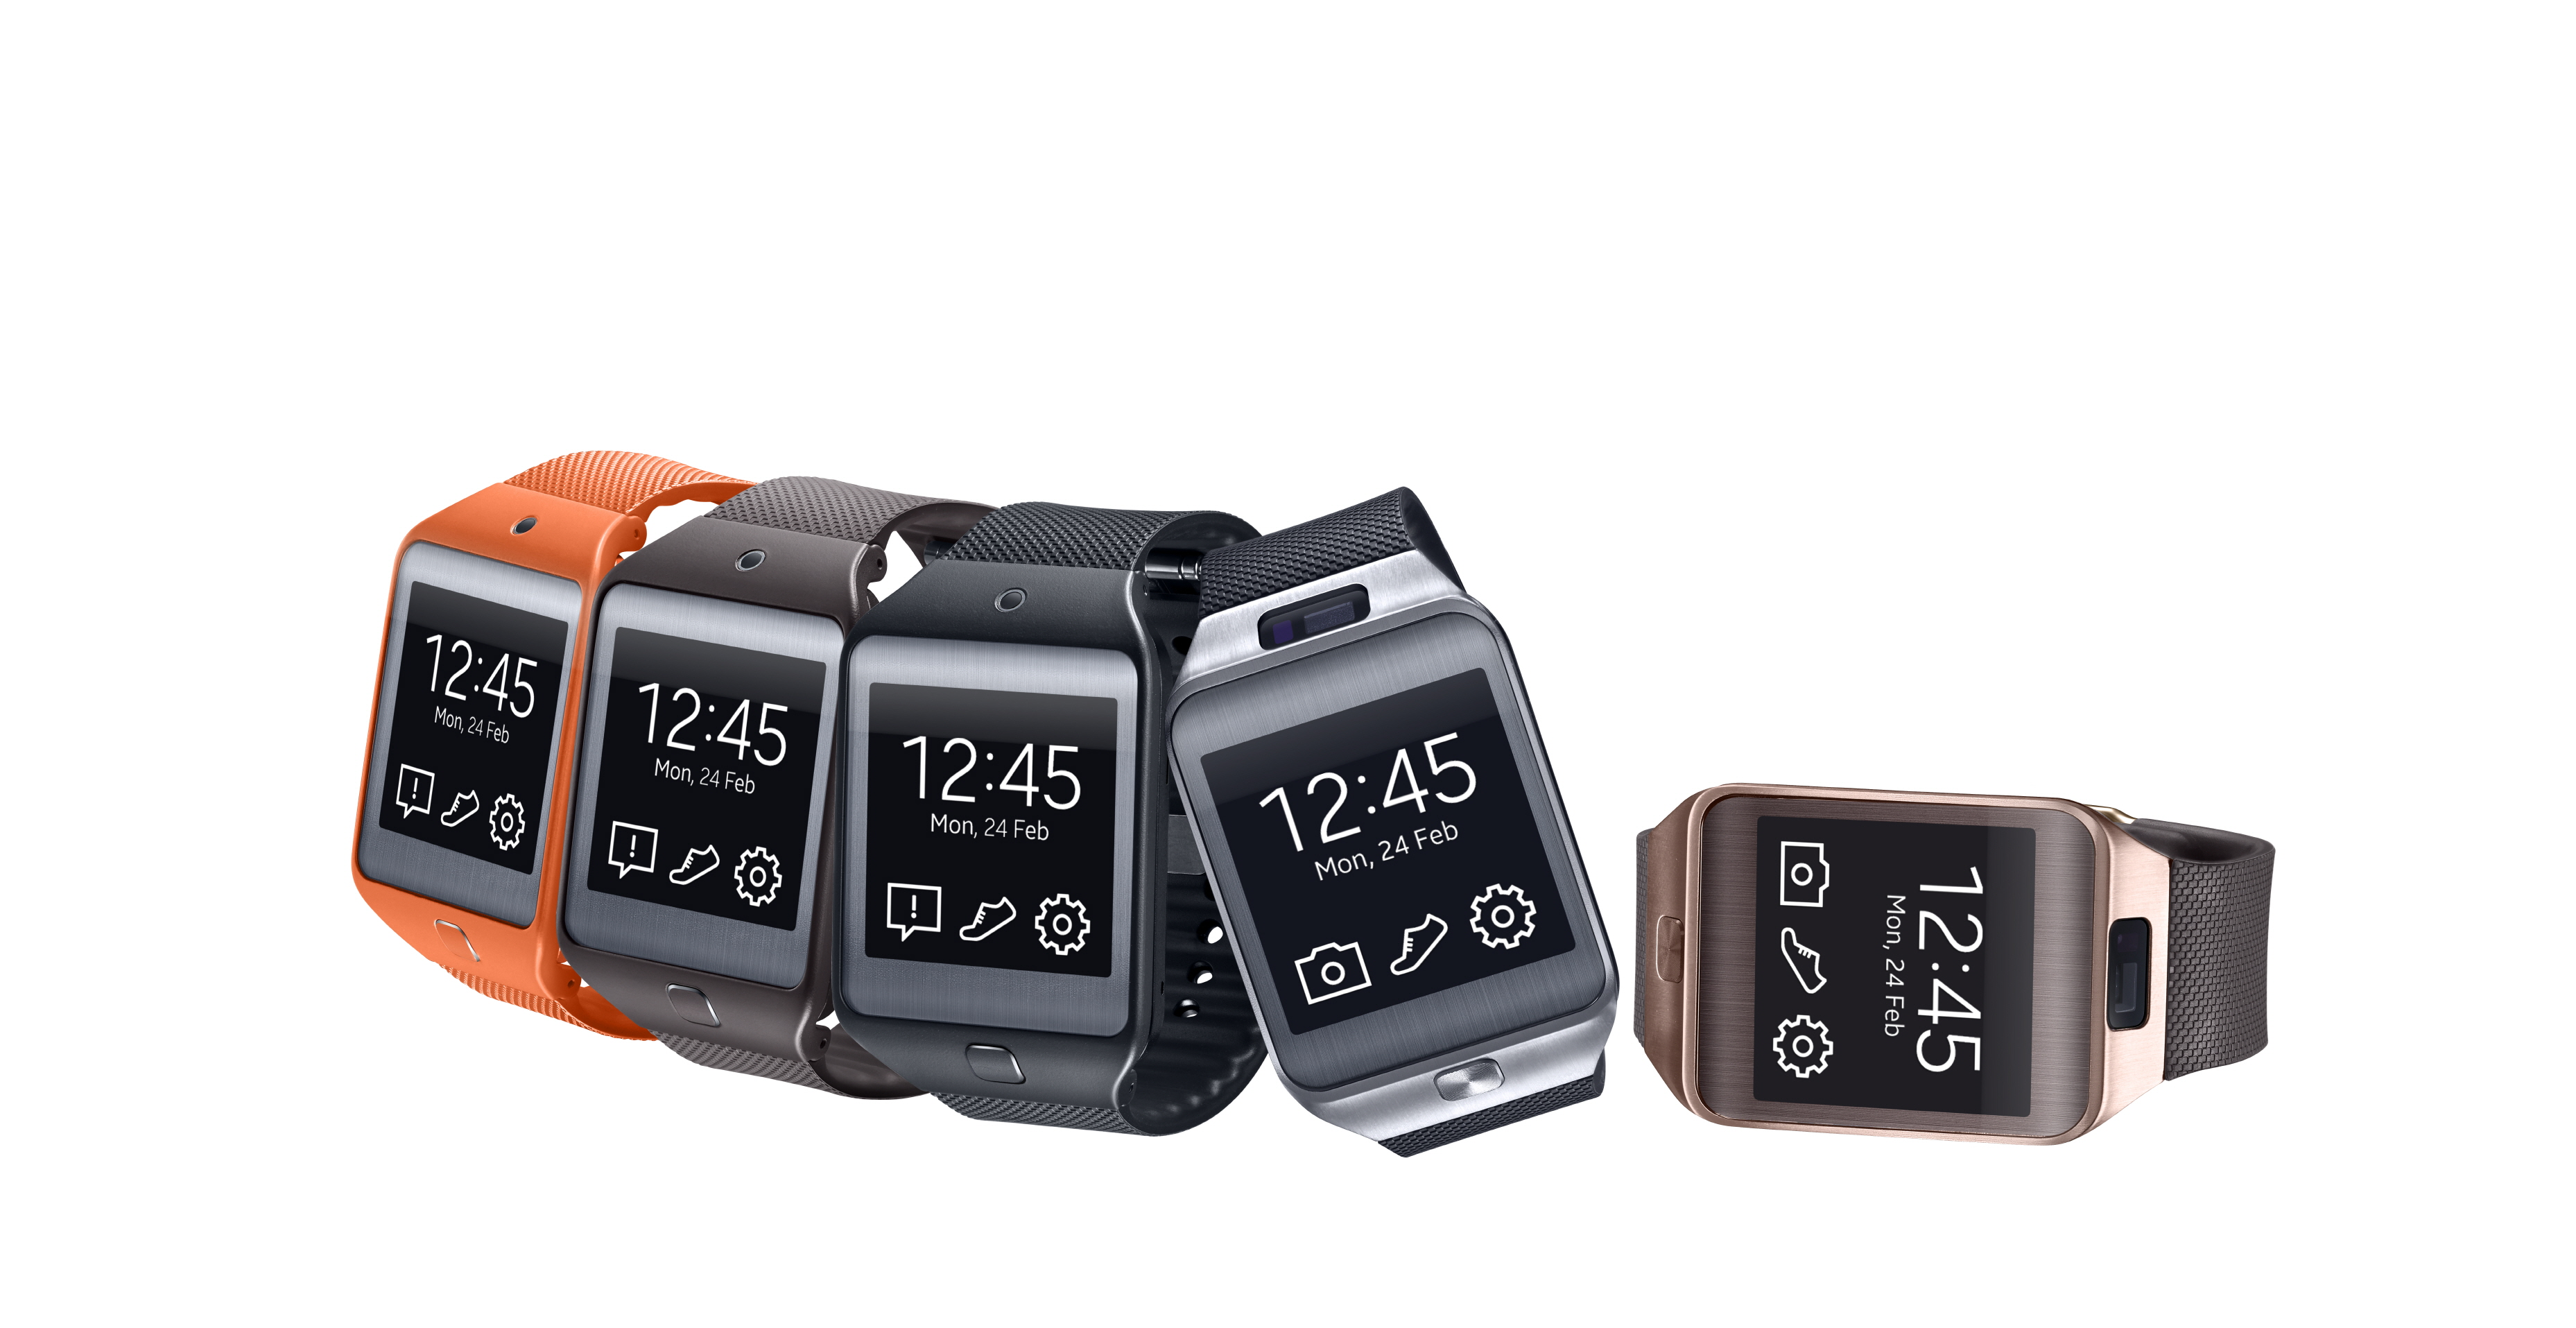 Samsung expands smartwatch line-up